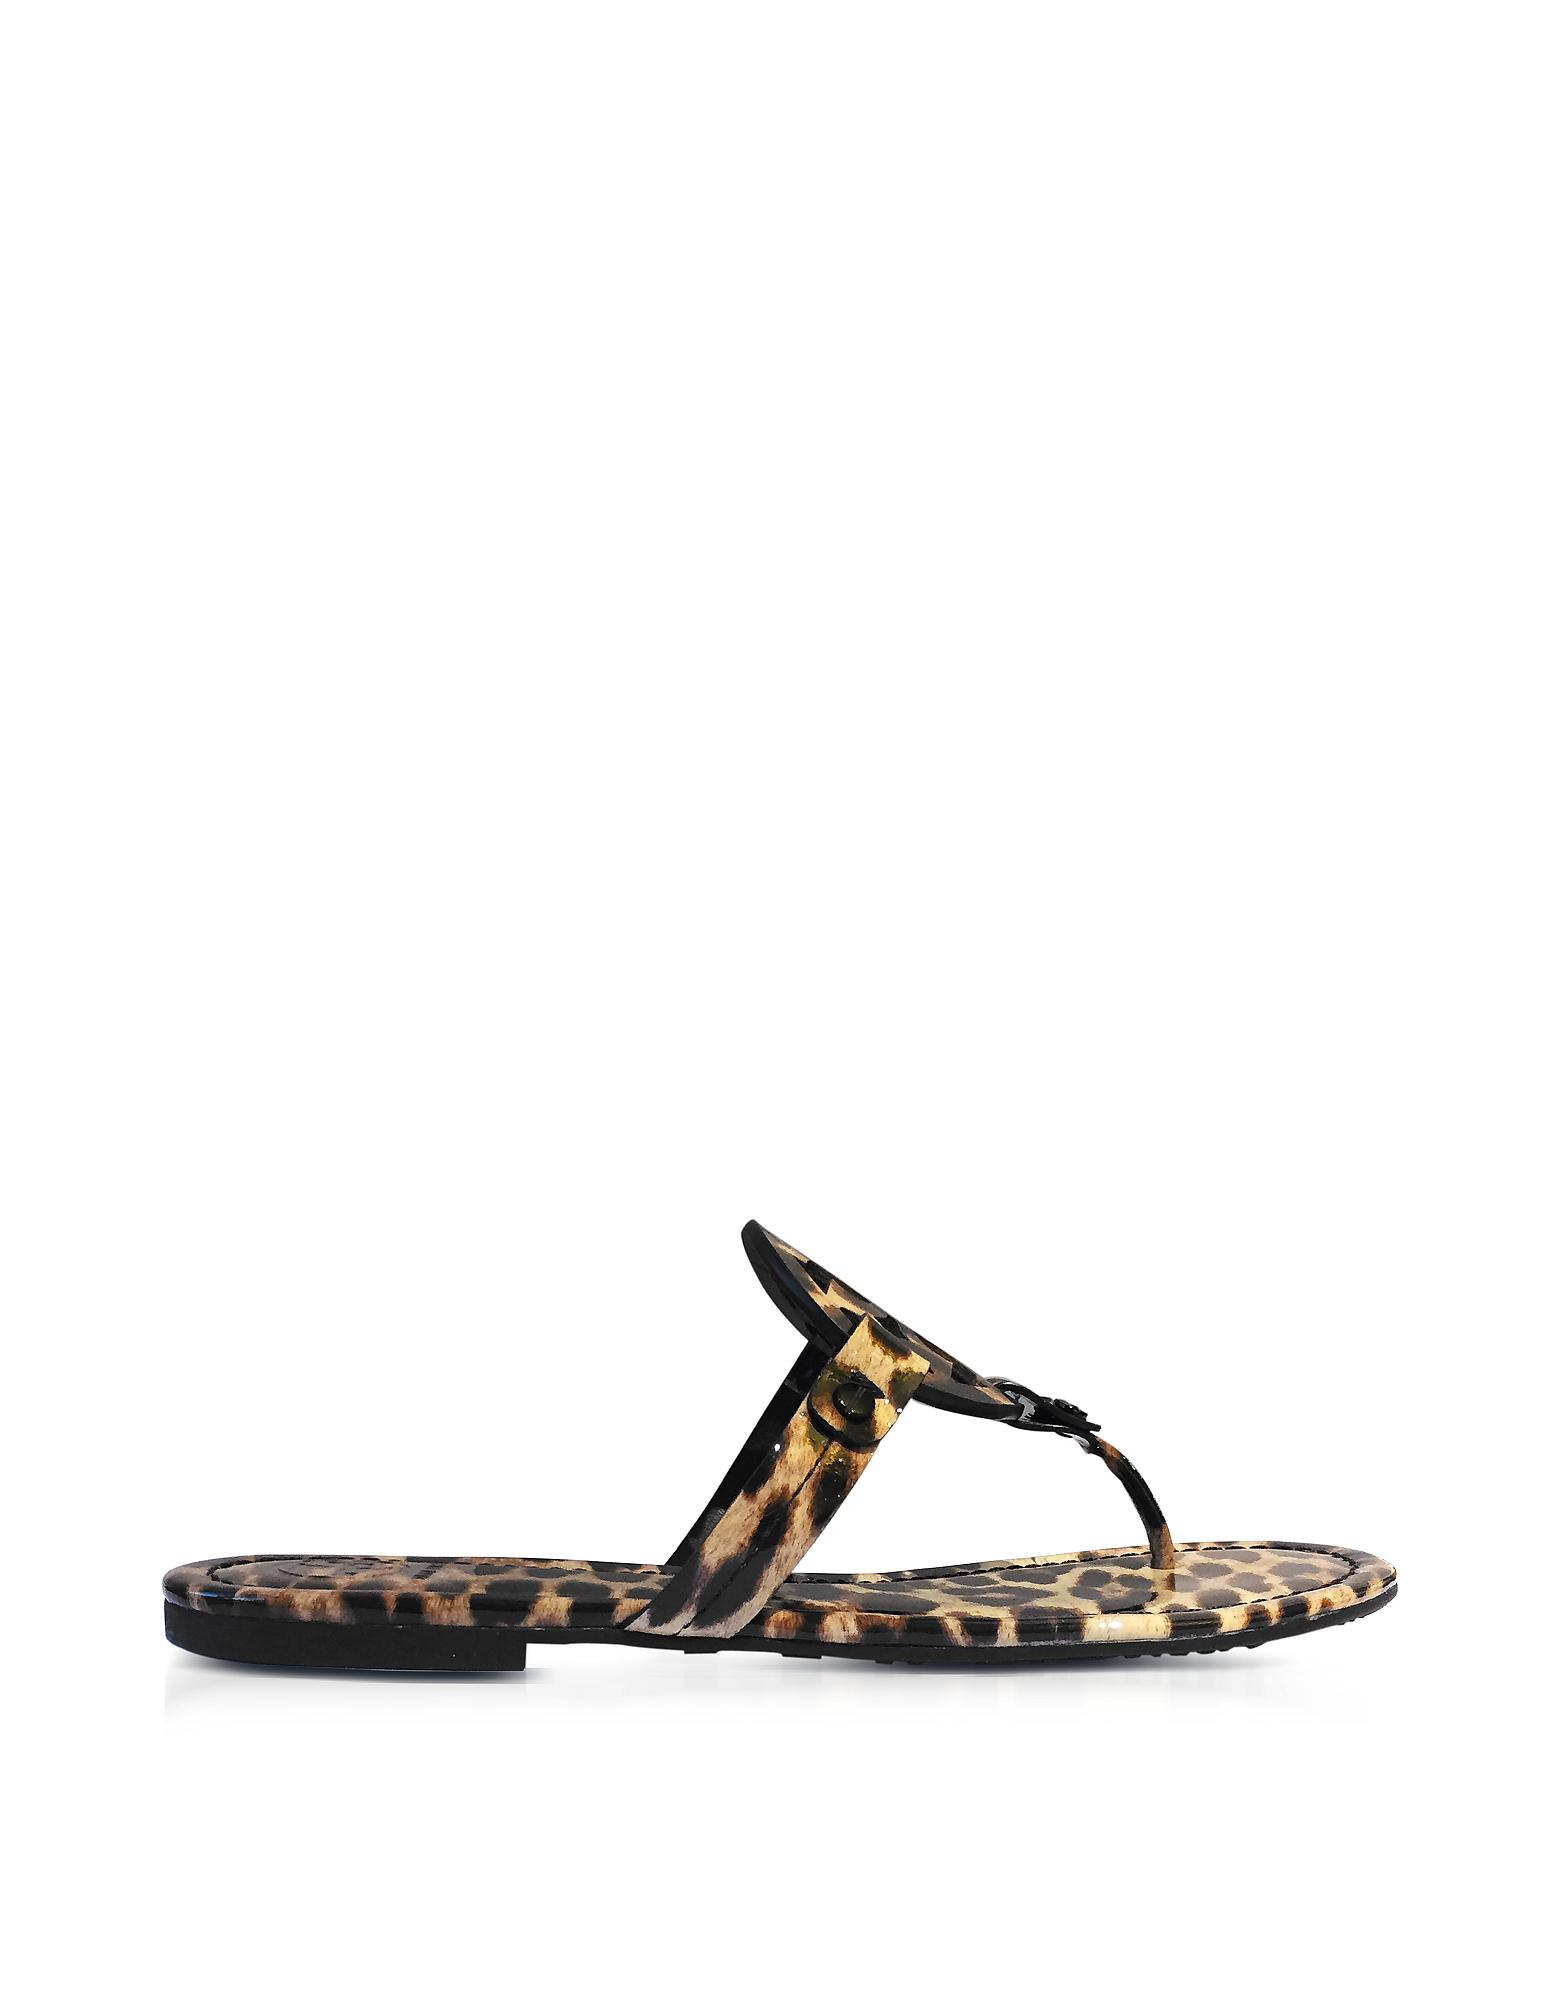 bbdd6744c1d77 Lyst - Tory Burch Miller Natural Leopard Print Leather Flat Sandals ...